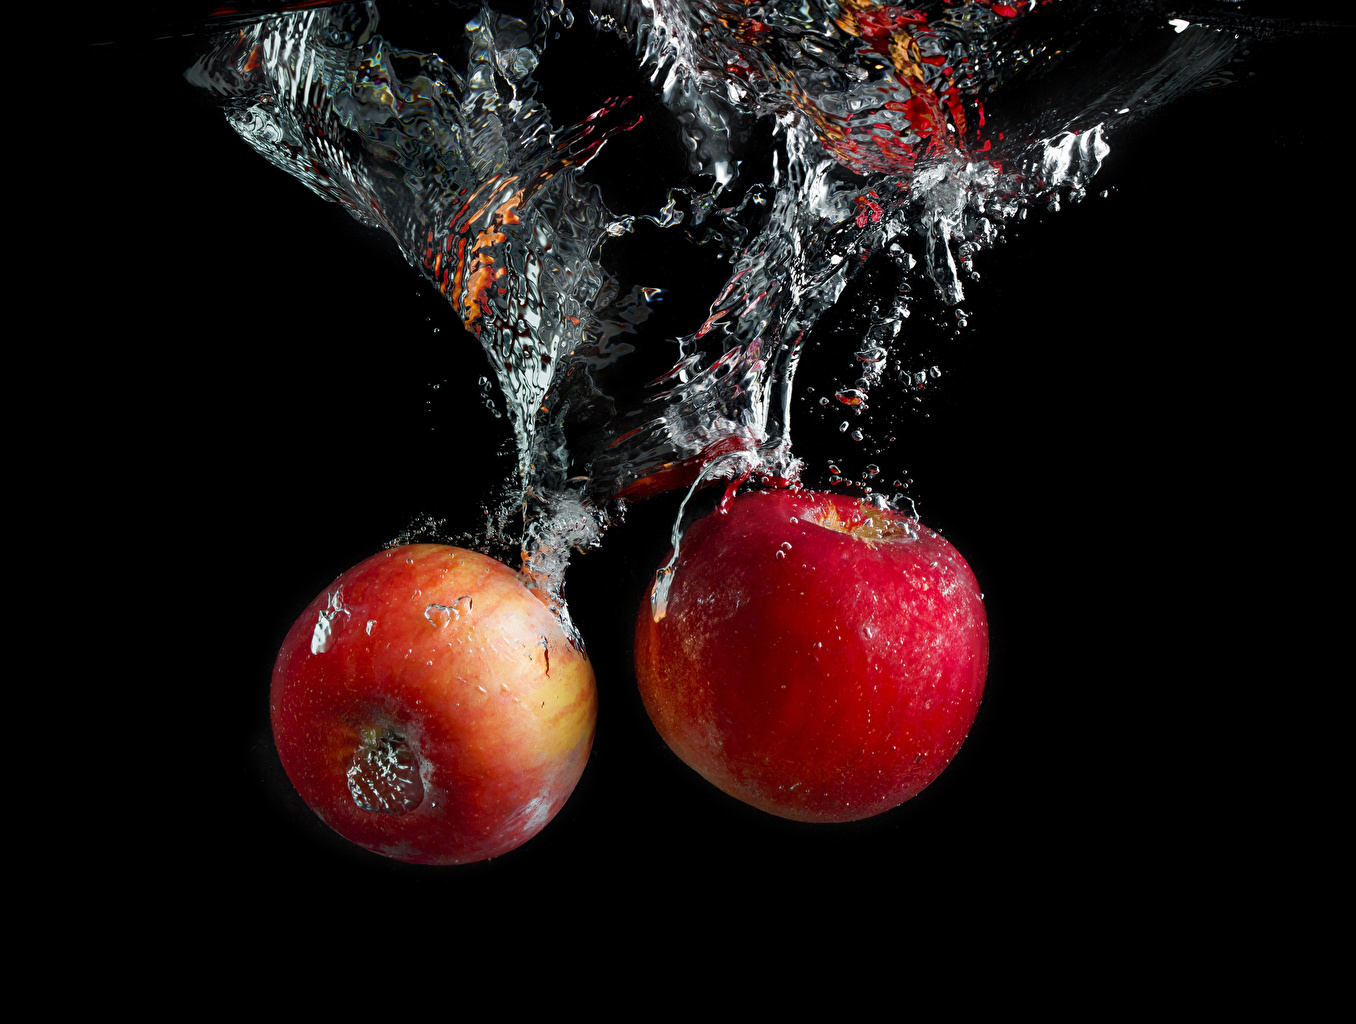 Images Water bubbles 2 Apples Food Water Black background Two